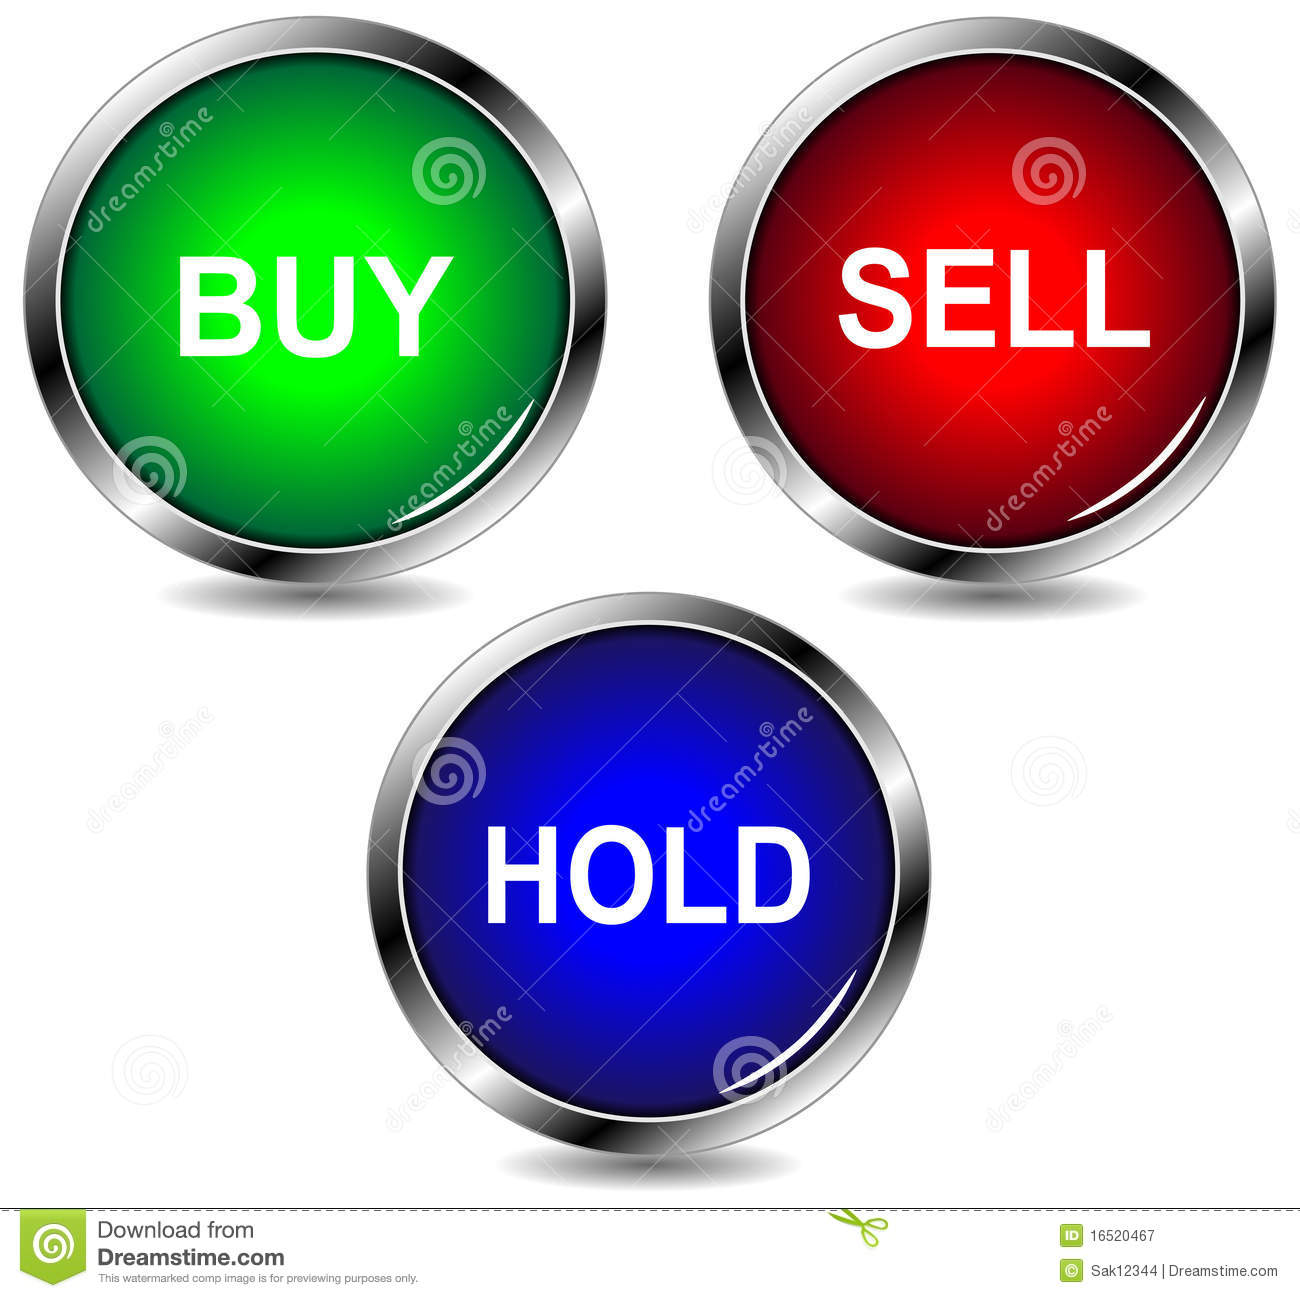 Buy Sell Icon: Buy Sell Hold Icons Stock Vector. Illustration Of Invest